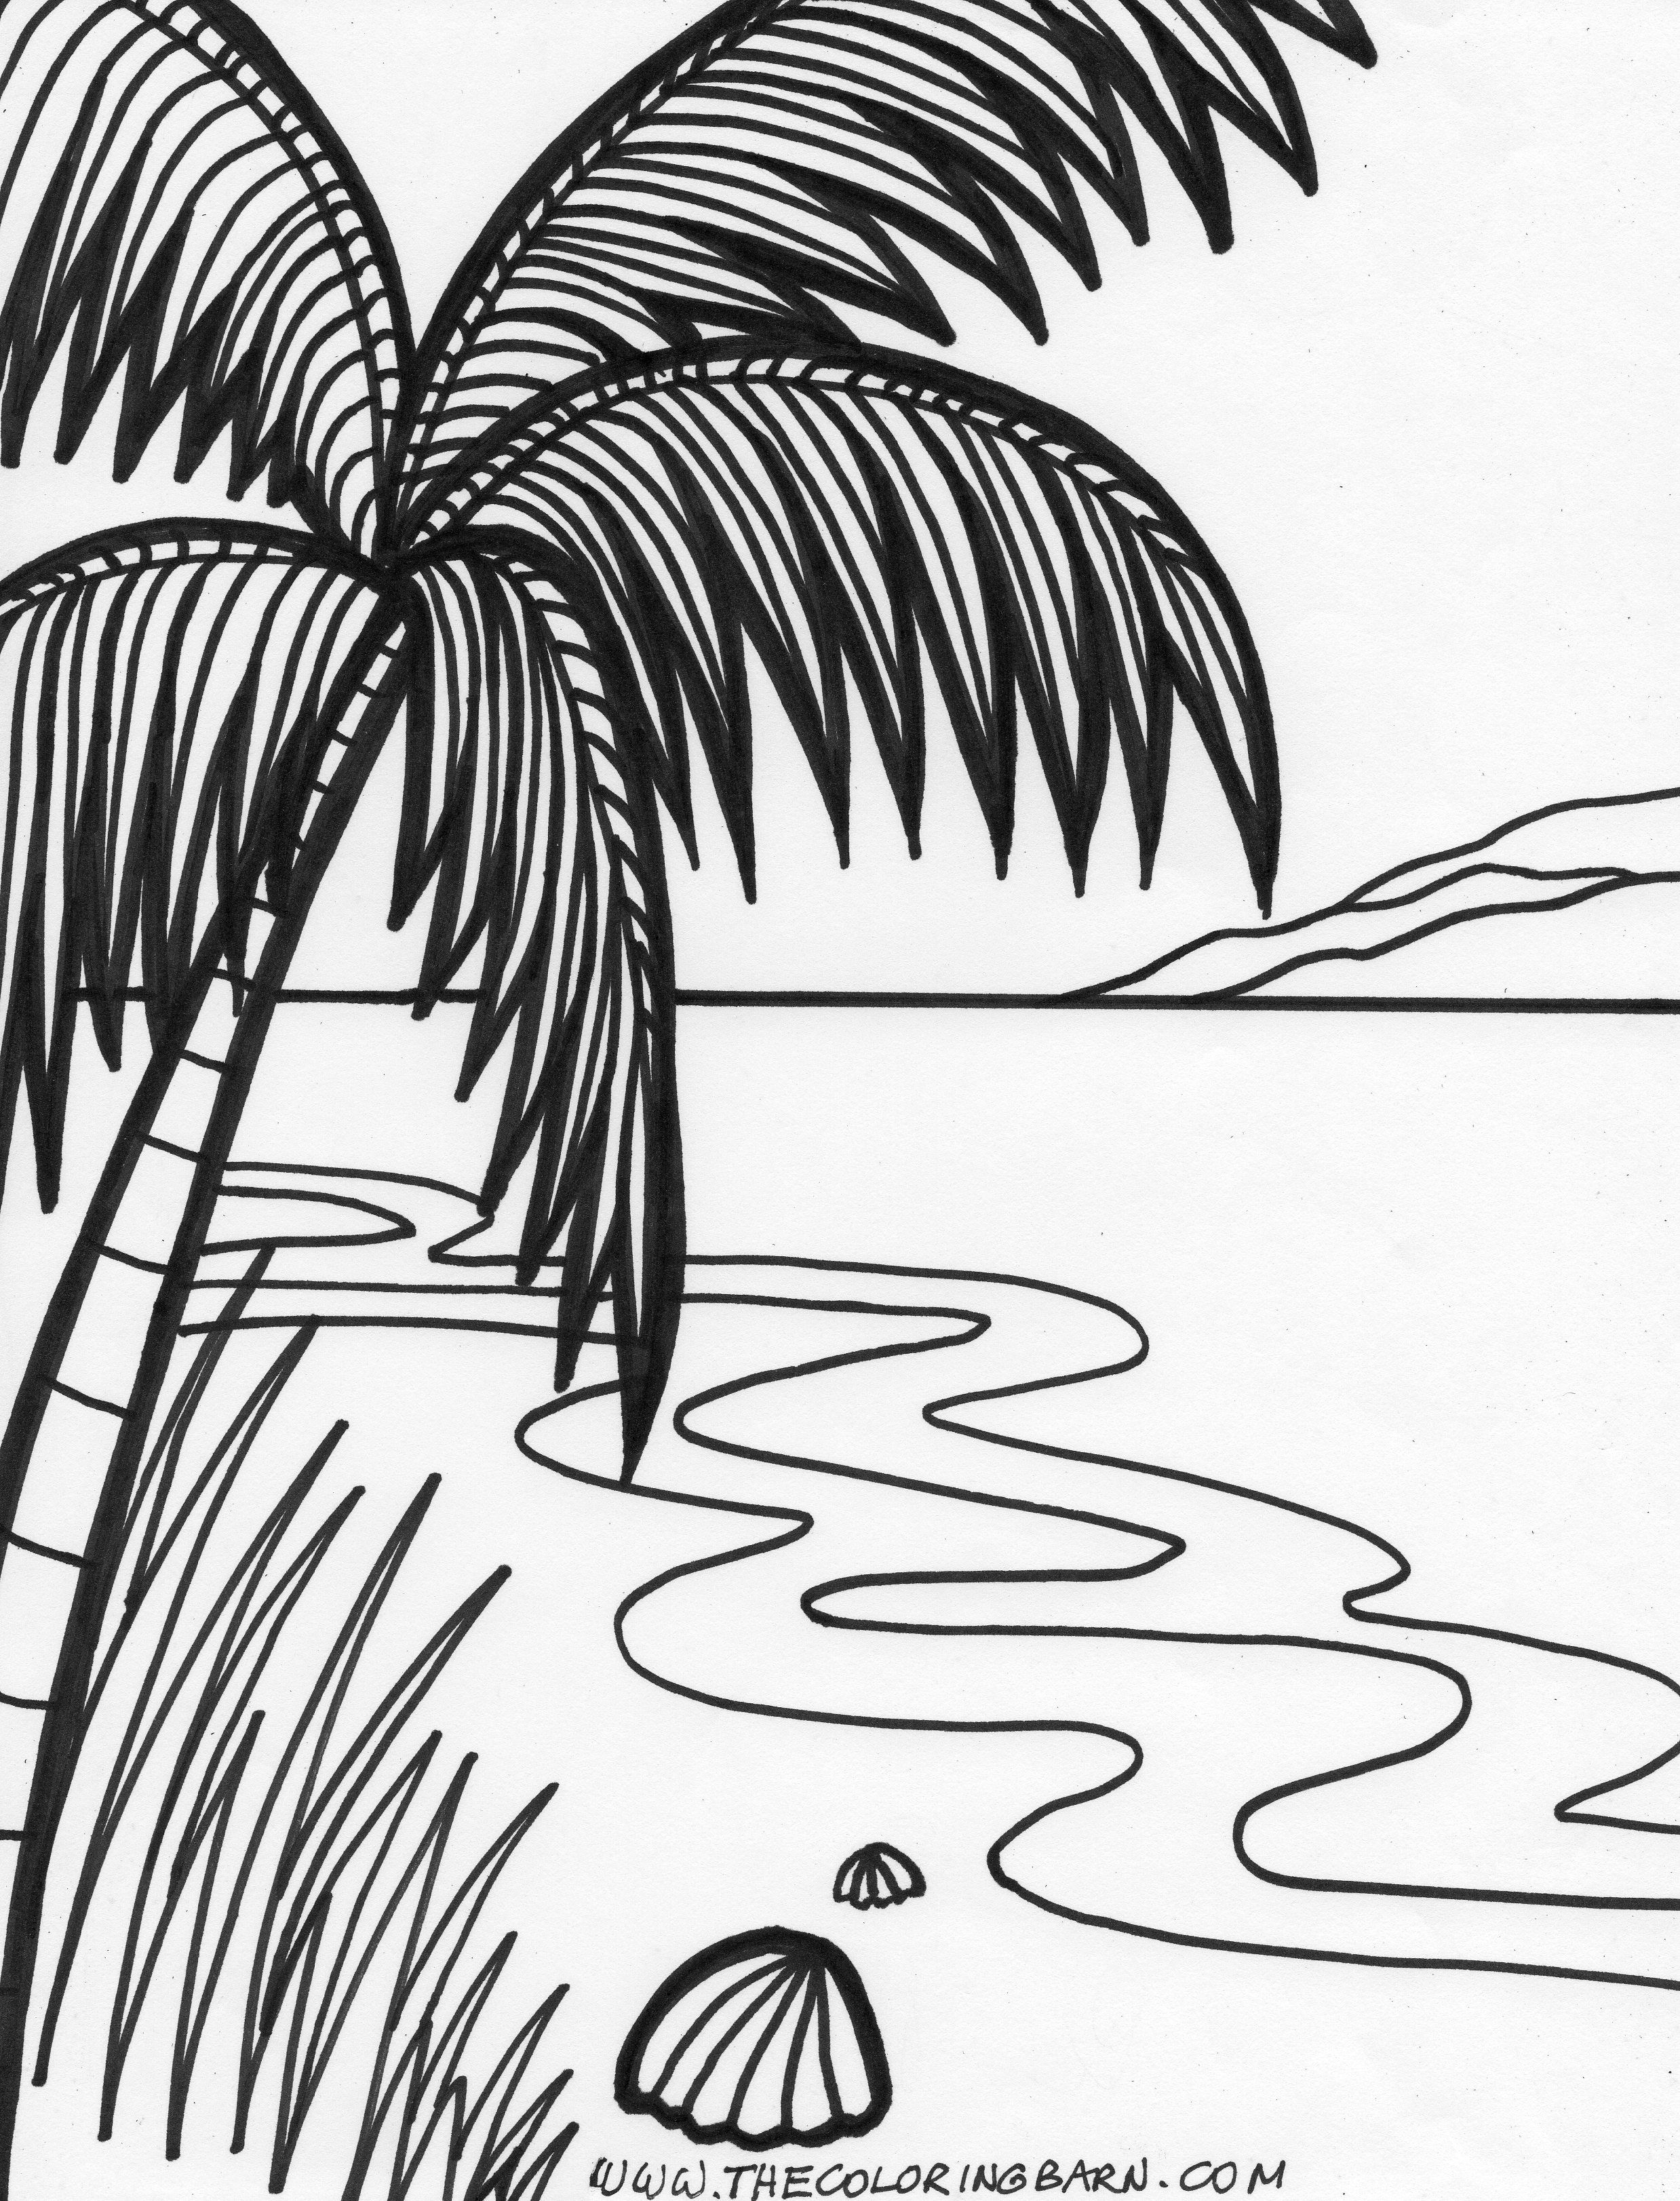 coloring pages island scene - photo#28